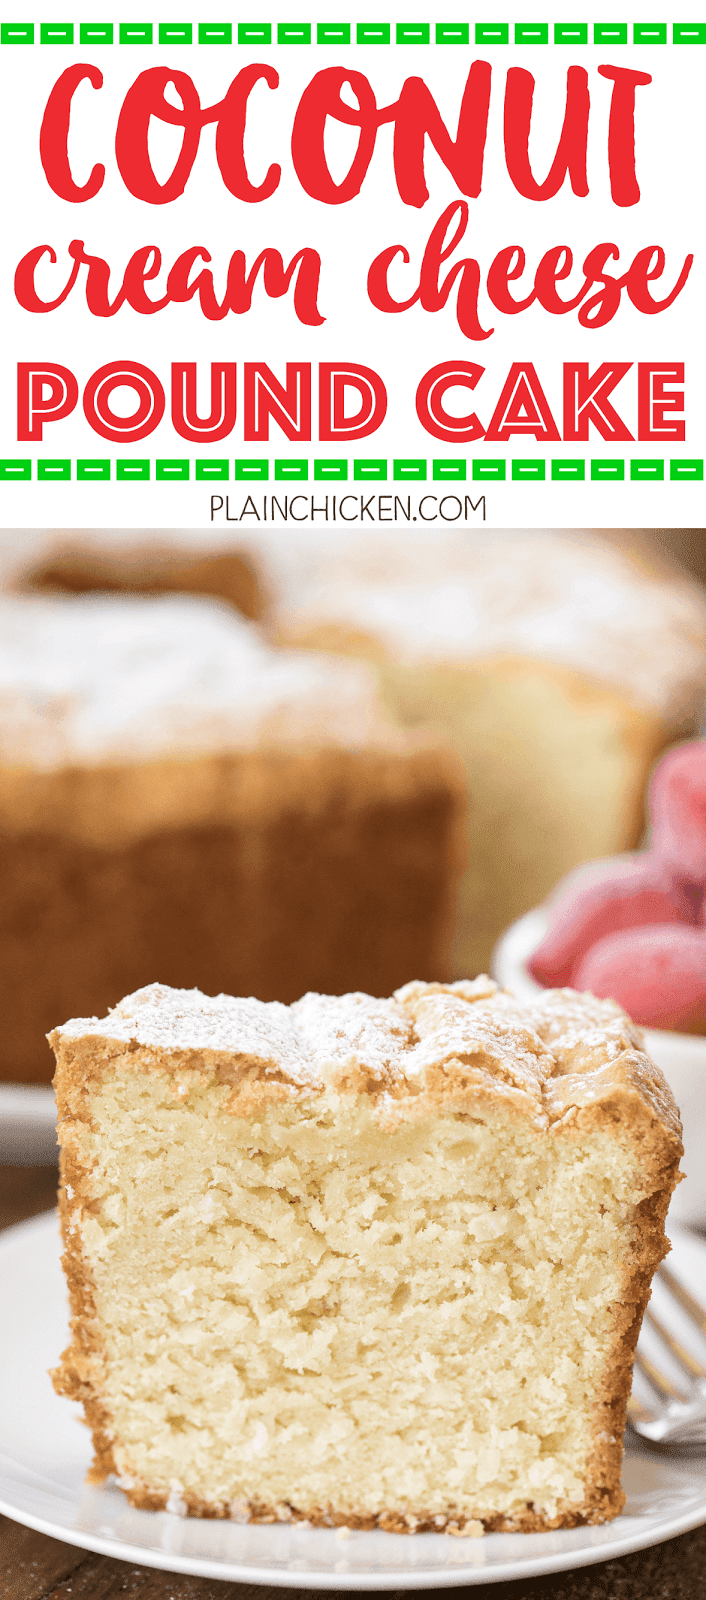 Coconut Cream Cheese Pound Cake - a favorite! SO delicious!!! Can make ahead of time and store in an air-tight container or even freeze the cake!! Butter, shortening, cream cheese, sugar, eggs, coconut extract, vanilla, flour, baking soda, salt and sweetened coconut. Everyone raves about this delicious cake! SO easy and it is a real crowd pleaser. Great for parties, potlucks and a great homemade gift.